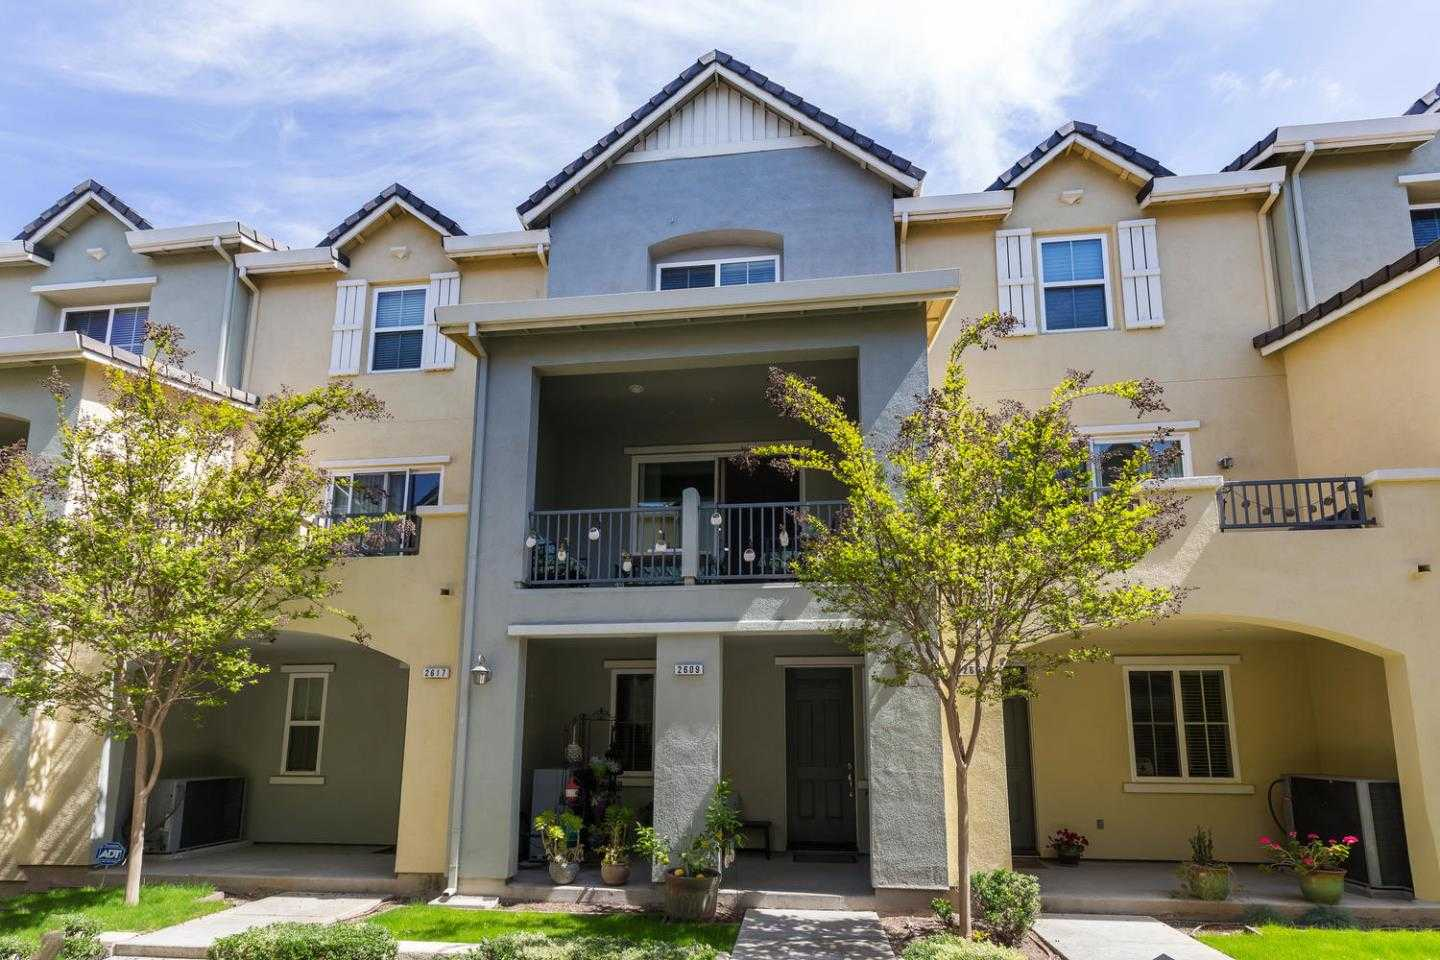 $918,800 - 4Br/4Ba -  for Sale in San Jose